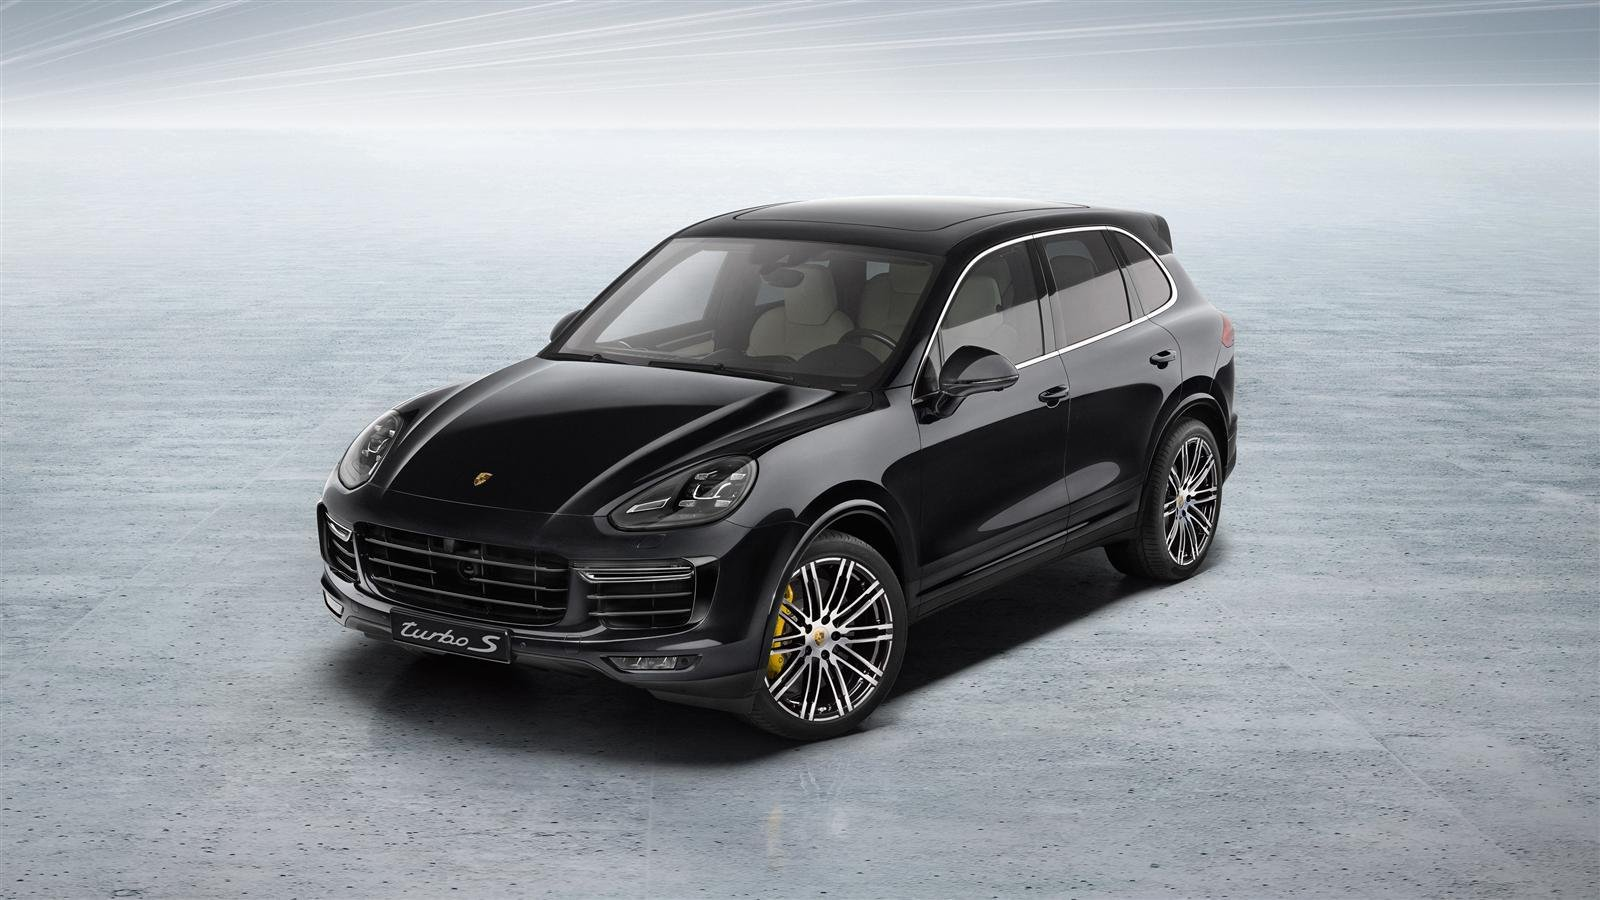 2016 porsche cayenne turbo s picture 610560 car review top speed. Black Bedroom Furniture Sets. Home Design Ideas